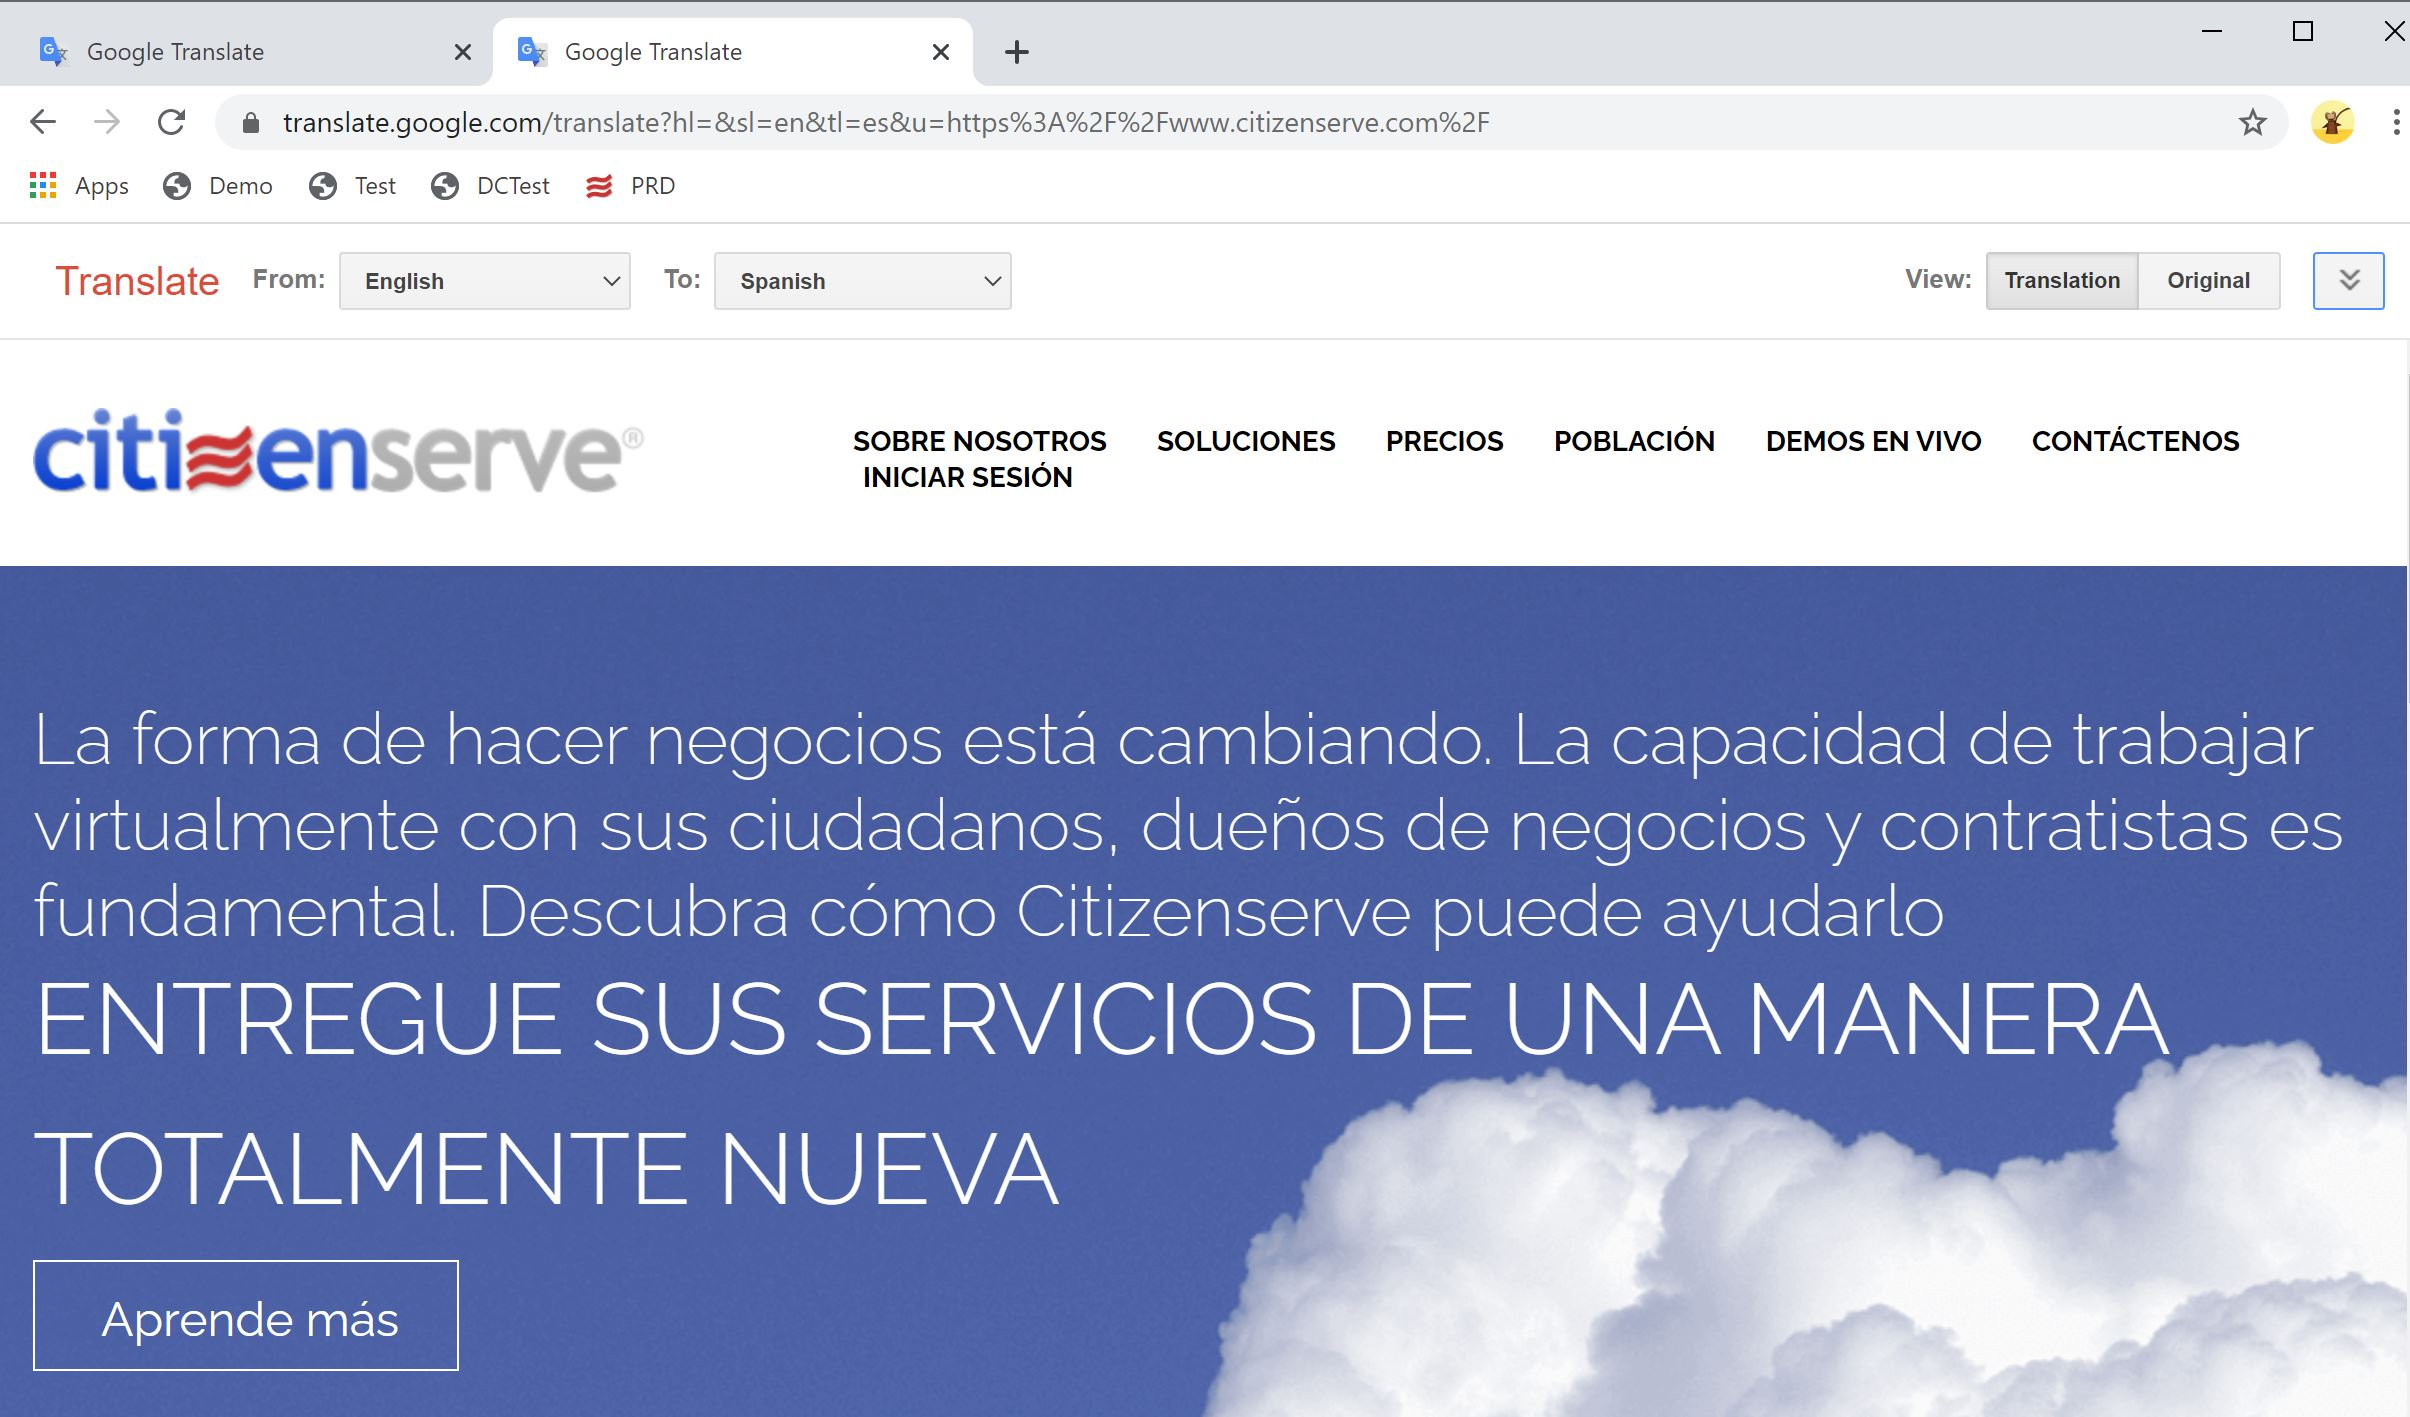 Citizenserve Home Page in Spanish